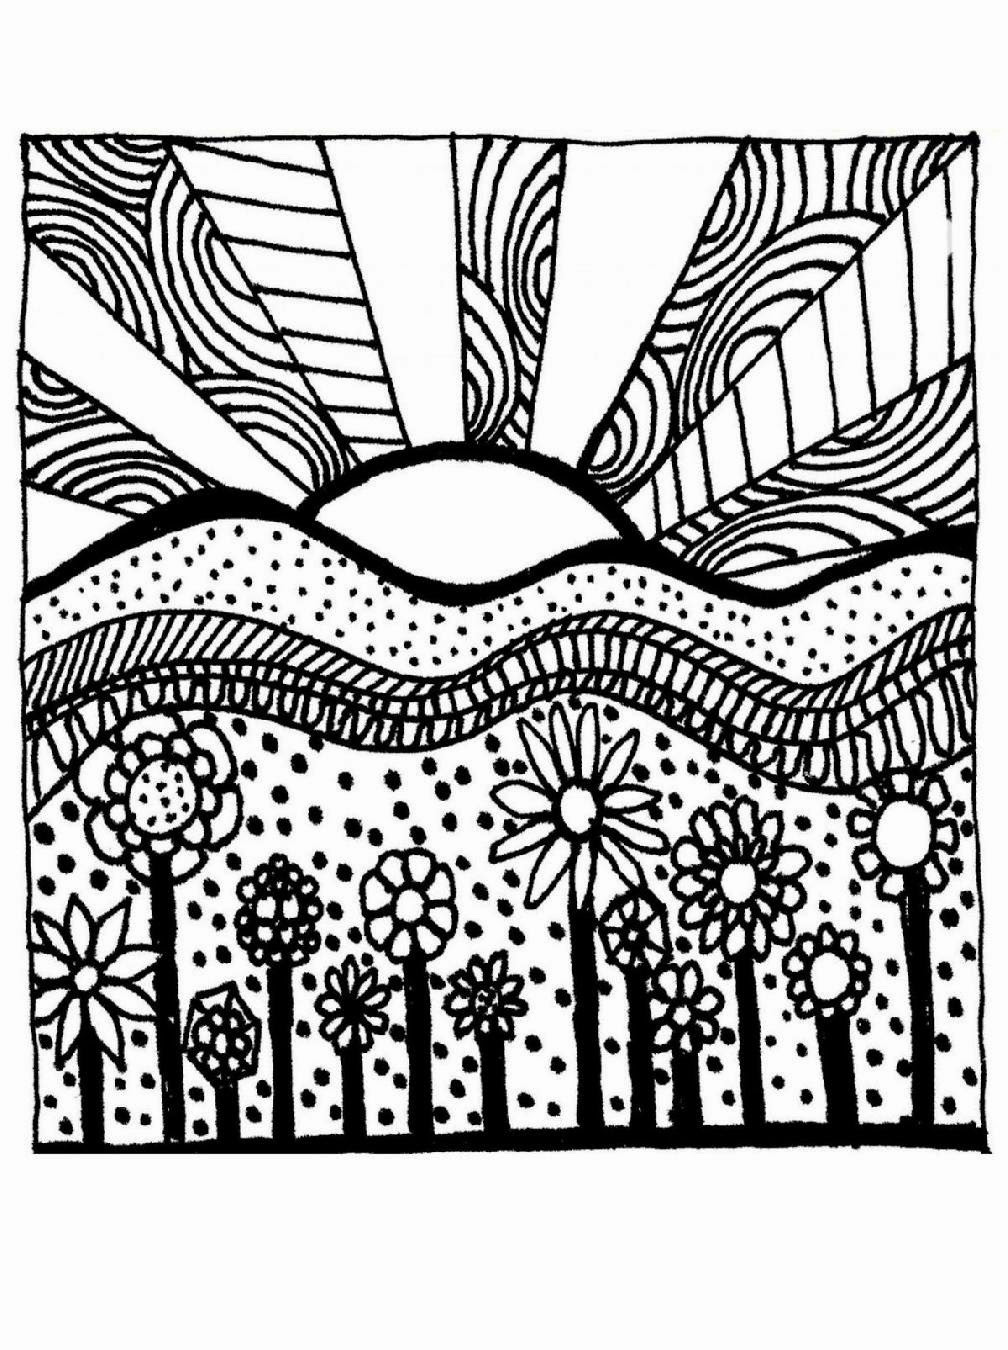 Coloring Pages For Adults To Print  Adult Coloring Sheets